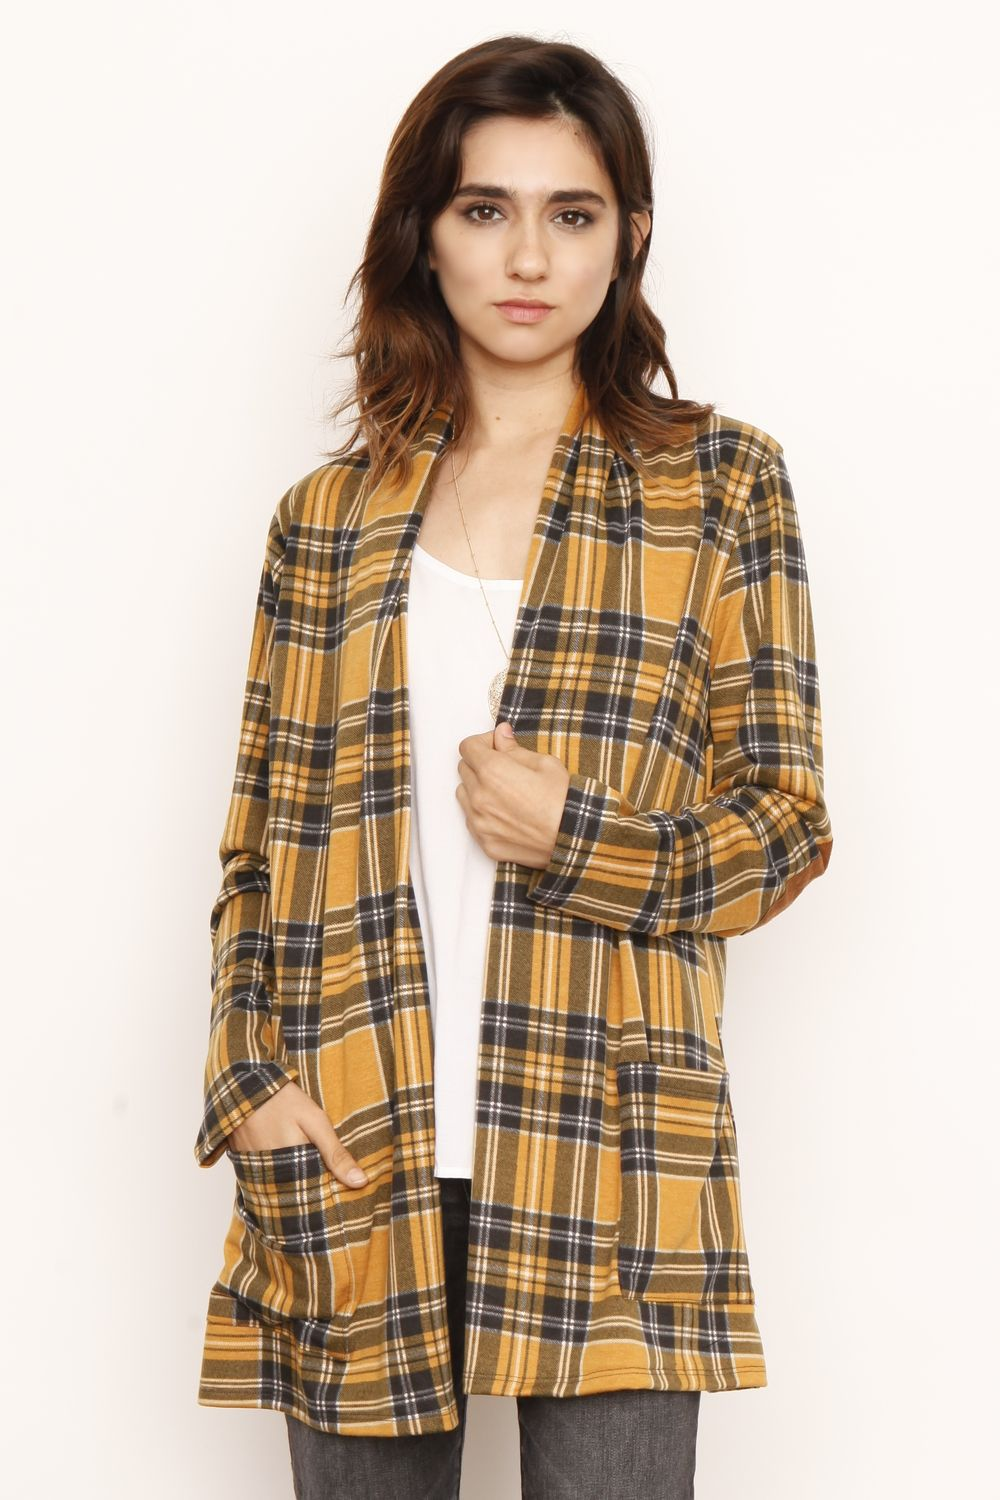 Mustard Plaid Elbow Patch Cardigan With Pockets_M